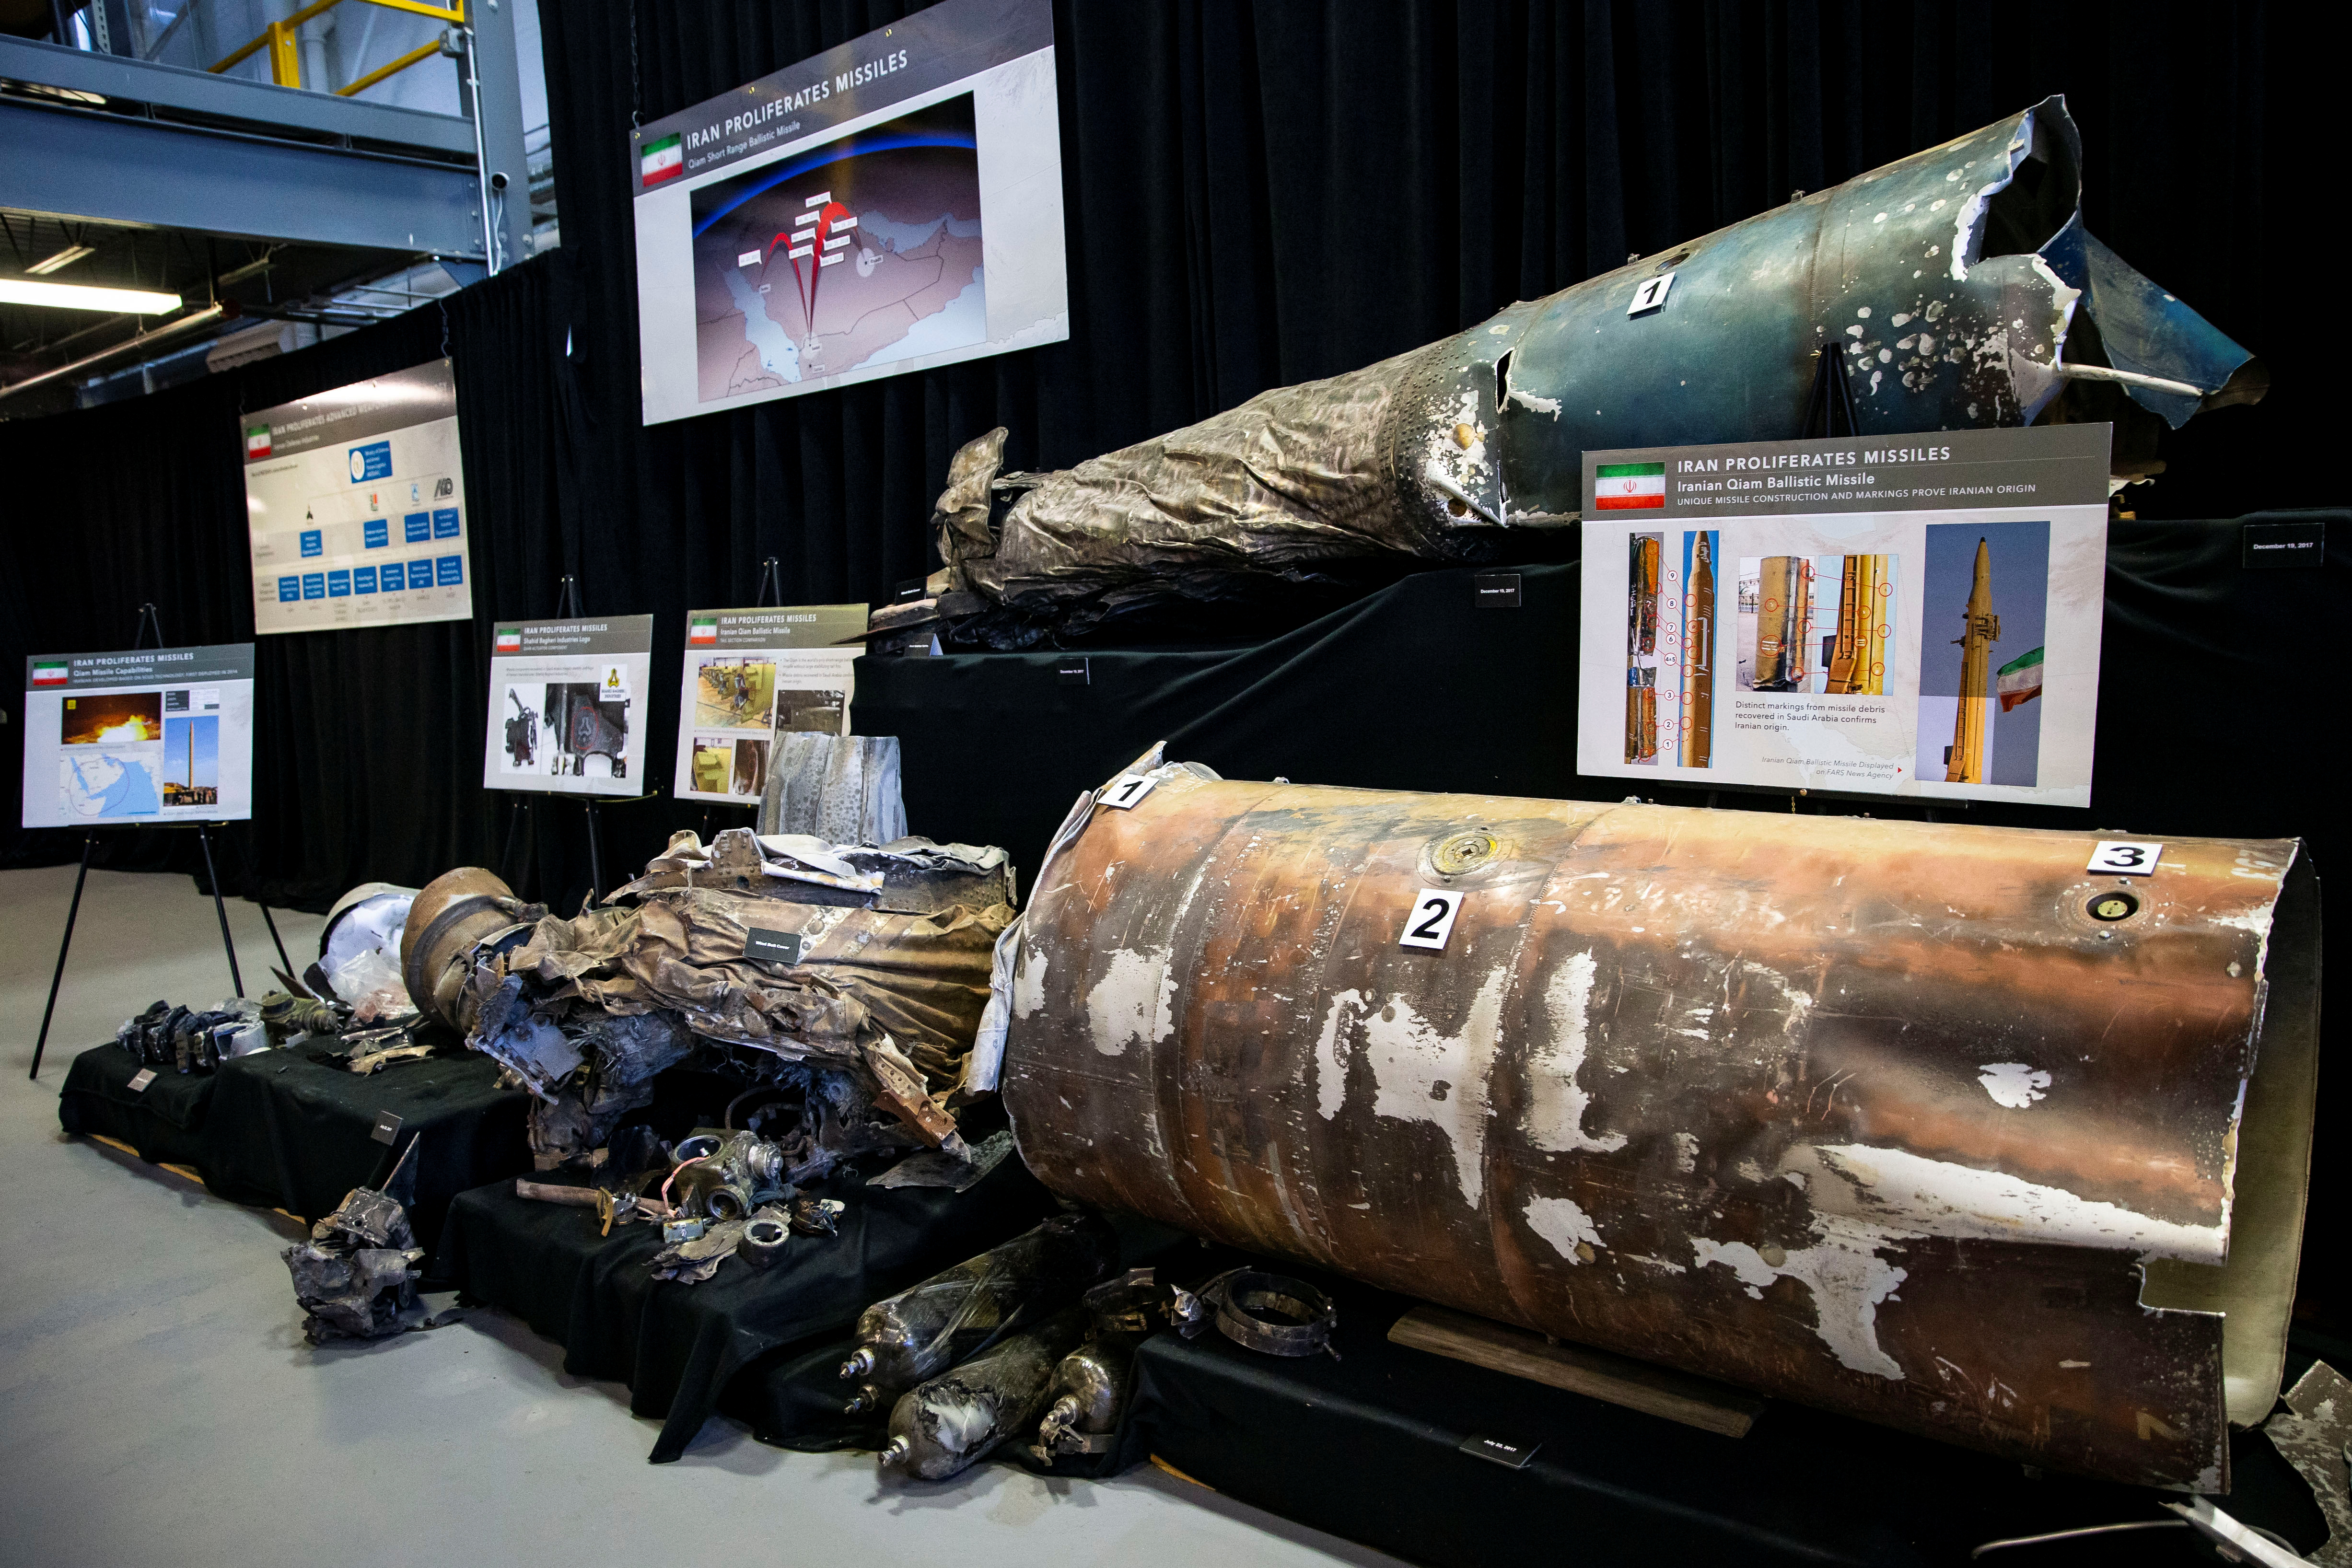 """A U.S. Department of Defense exhibit shows a """"Qiam"""" ballistic missile manufactured in Iran, at a military base in Washington, Nov. 29, 2018."""